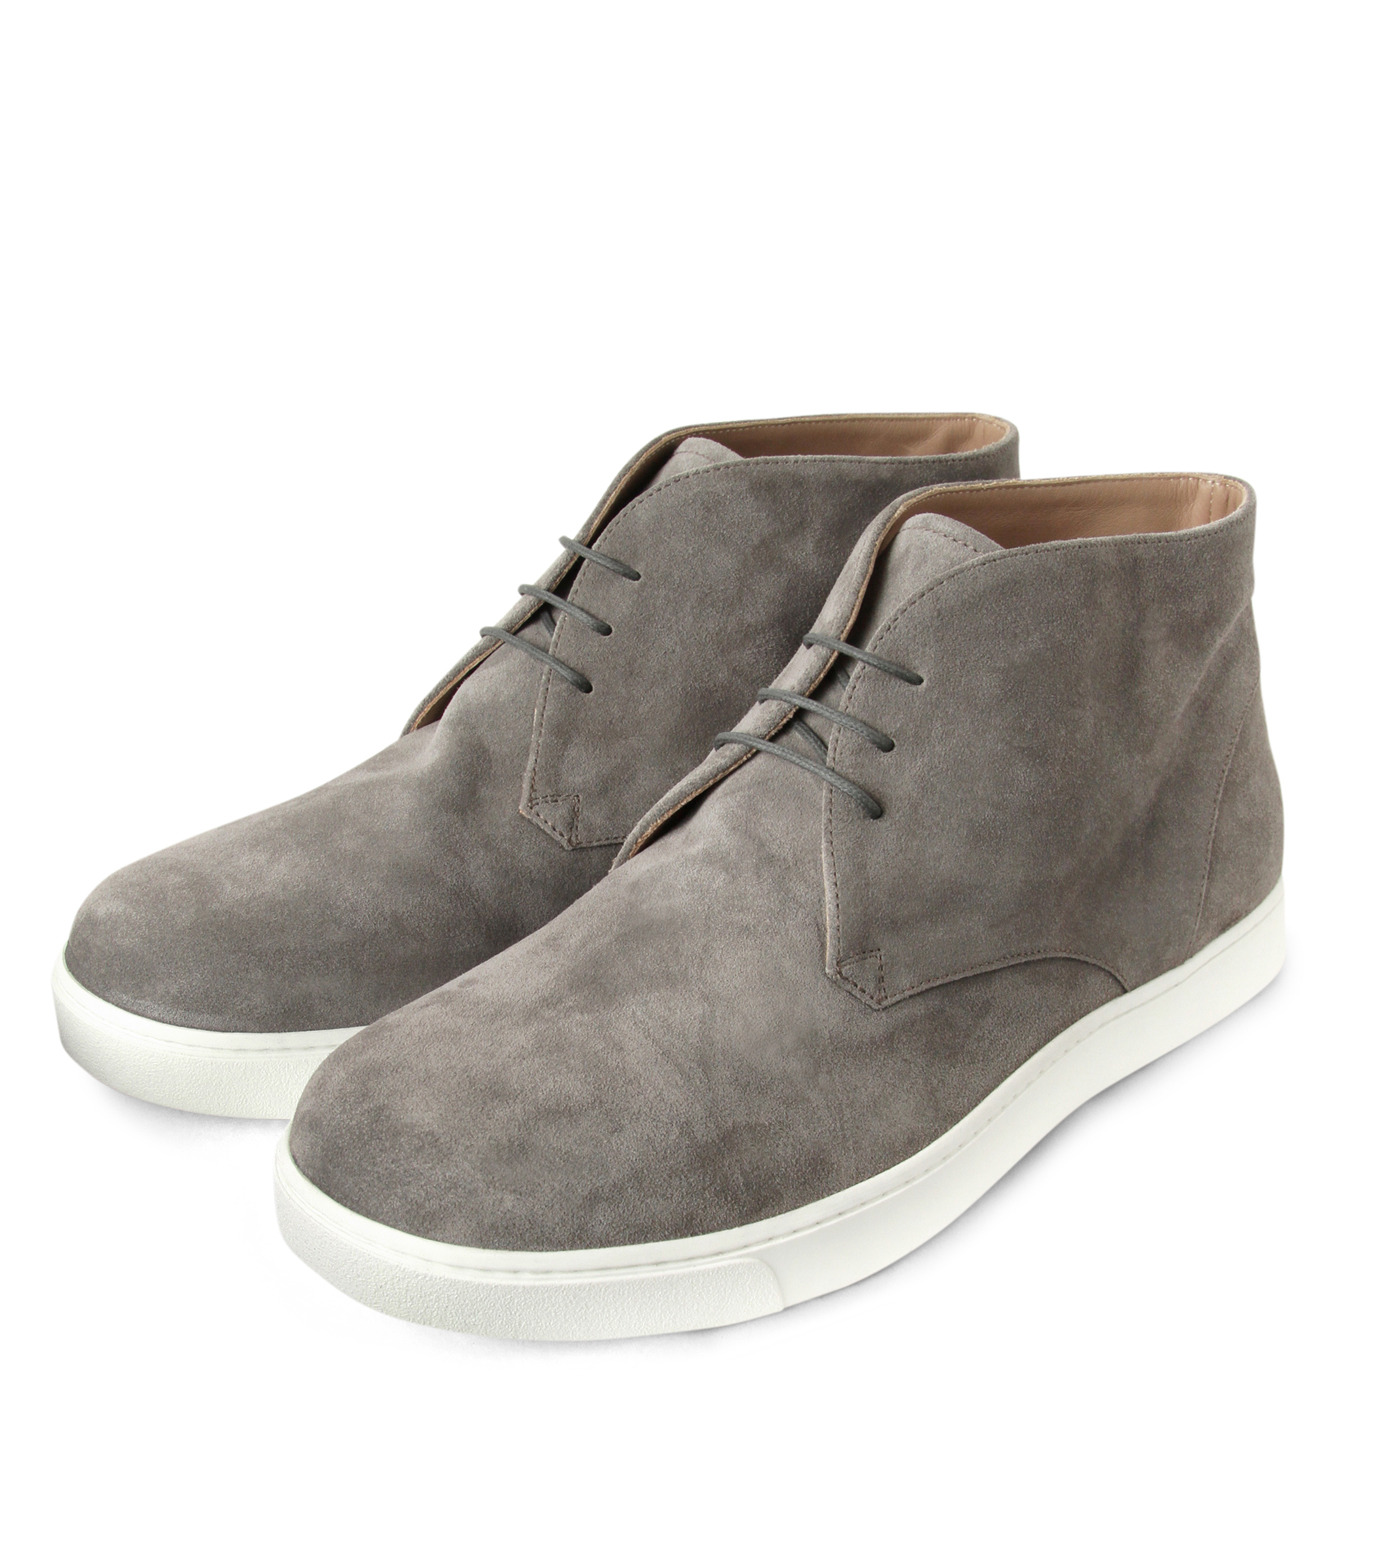 Gianvito Rossi(ジャンヴィト ロッシ)のSuede Lace Up Shoes-GRAY(シューズ/shoes)-GR29420-11 拡大詳細画像4